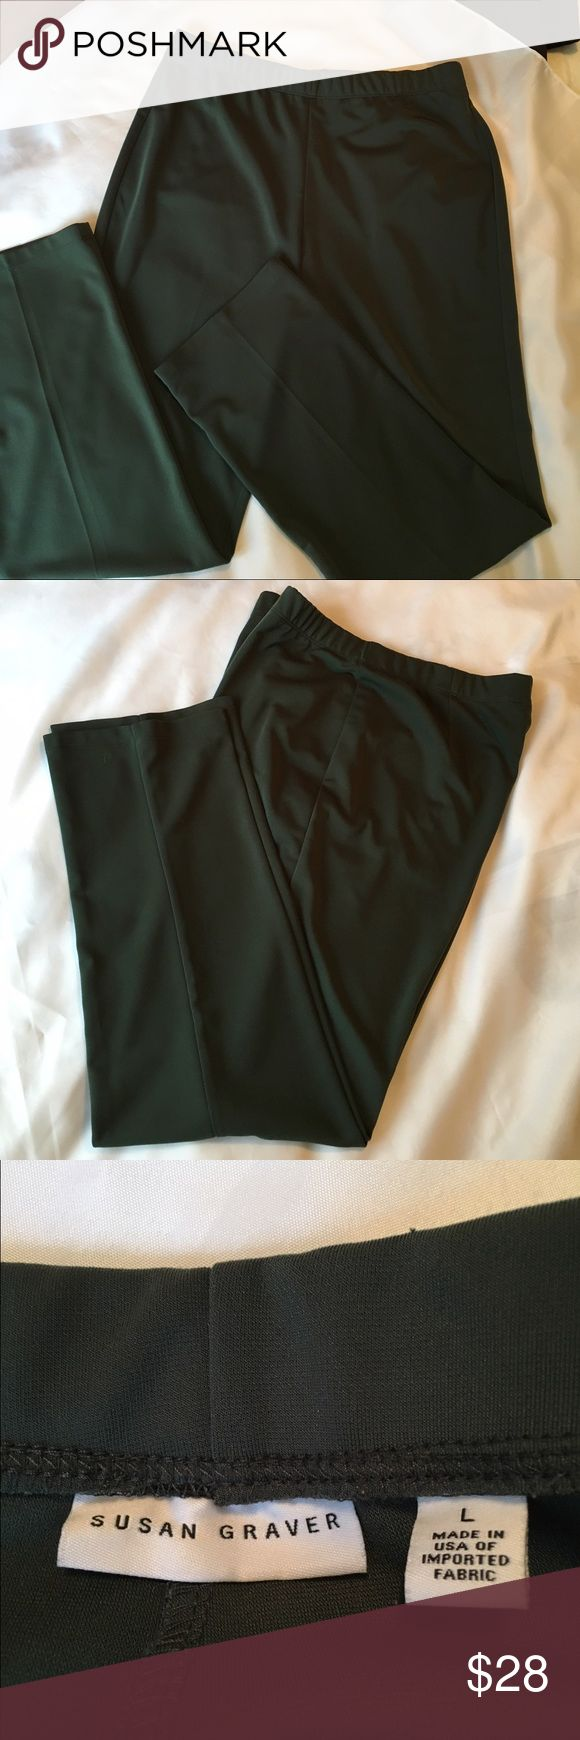 """Susan Graver Milano Knit straight leg pull-on pant Susan Graver Milano Knit straight leg pull-on pant in classic forest green. Beautiful drape of material. No cling floats over the body. Size large fits 14-16. Inseam 30"""" machine wash. Like new condition. Only selling because they are no longer my size. Susan Graver Pants Straight Leg"""